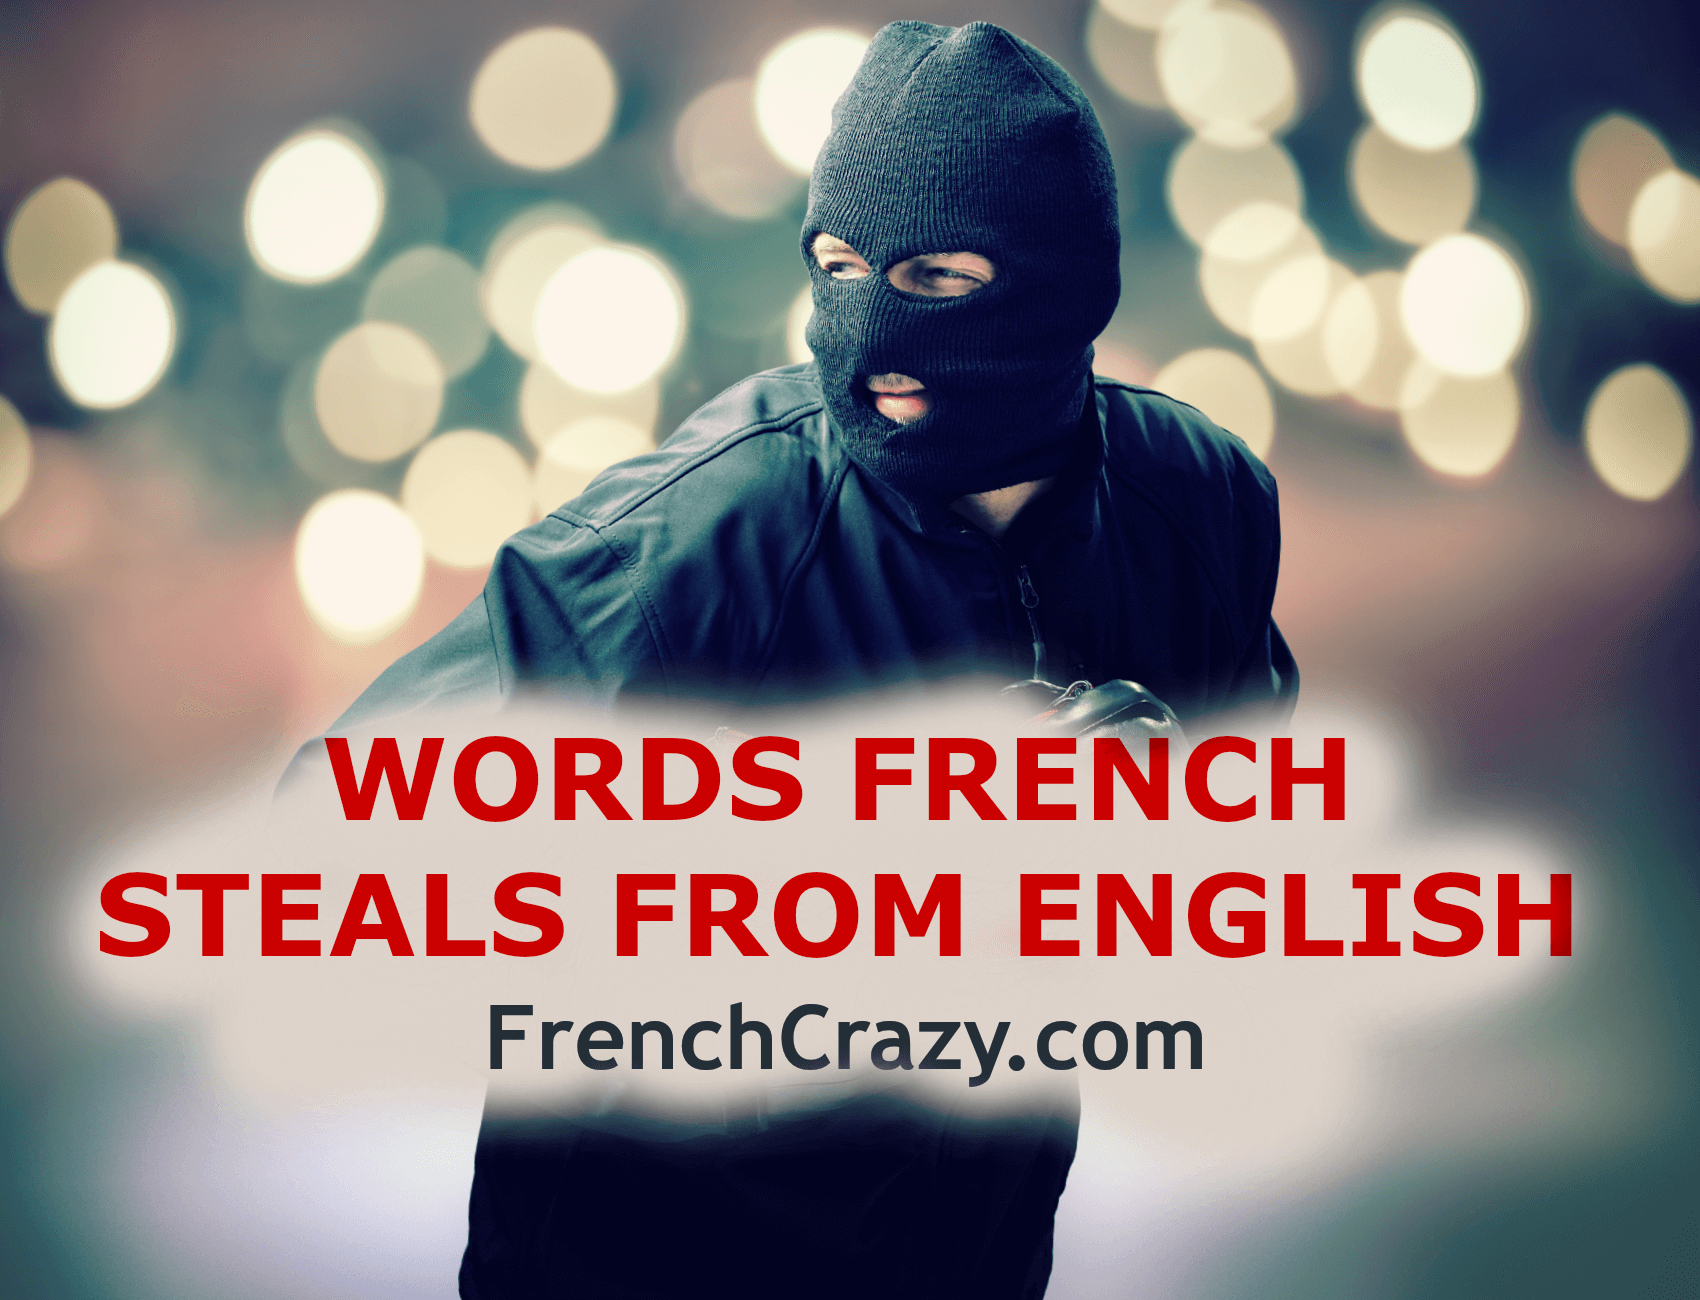 English words used in french frenchcrazy words french steals from english kristyandbryce Gallery